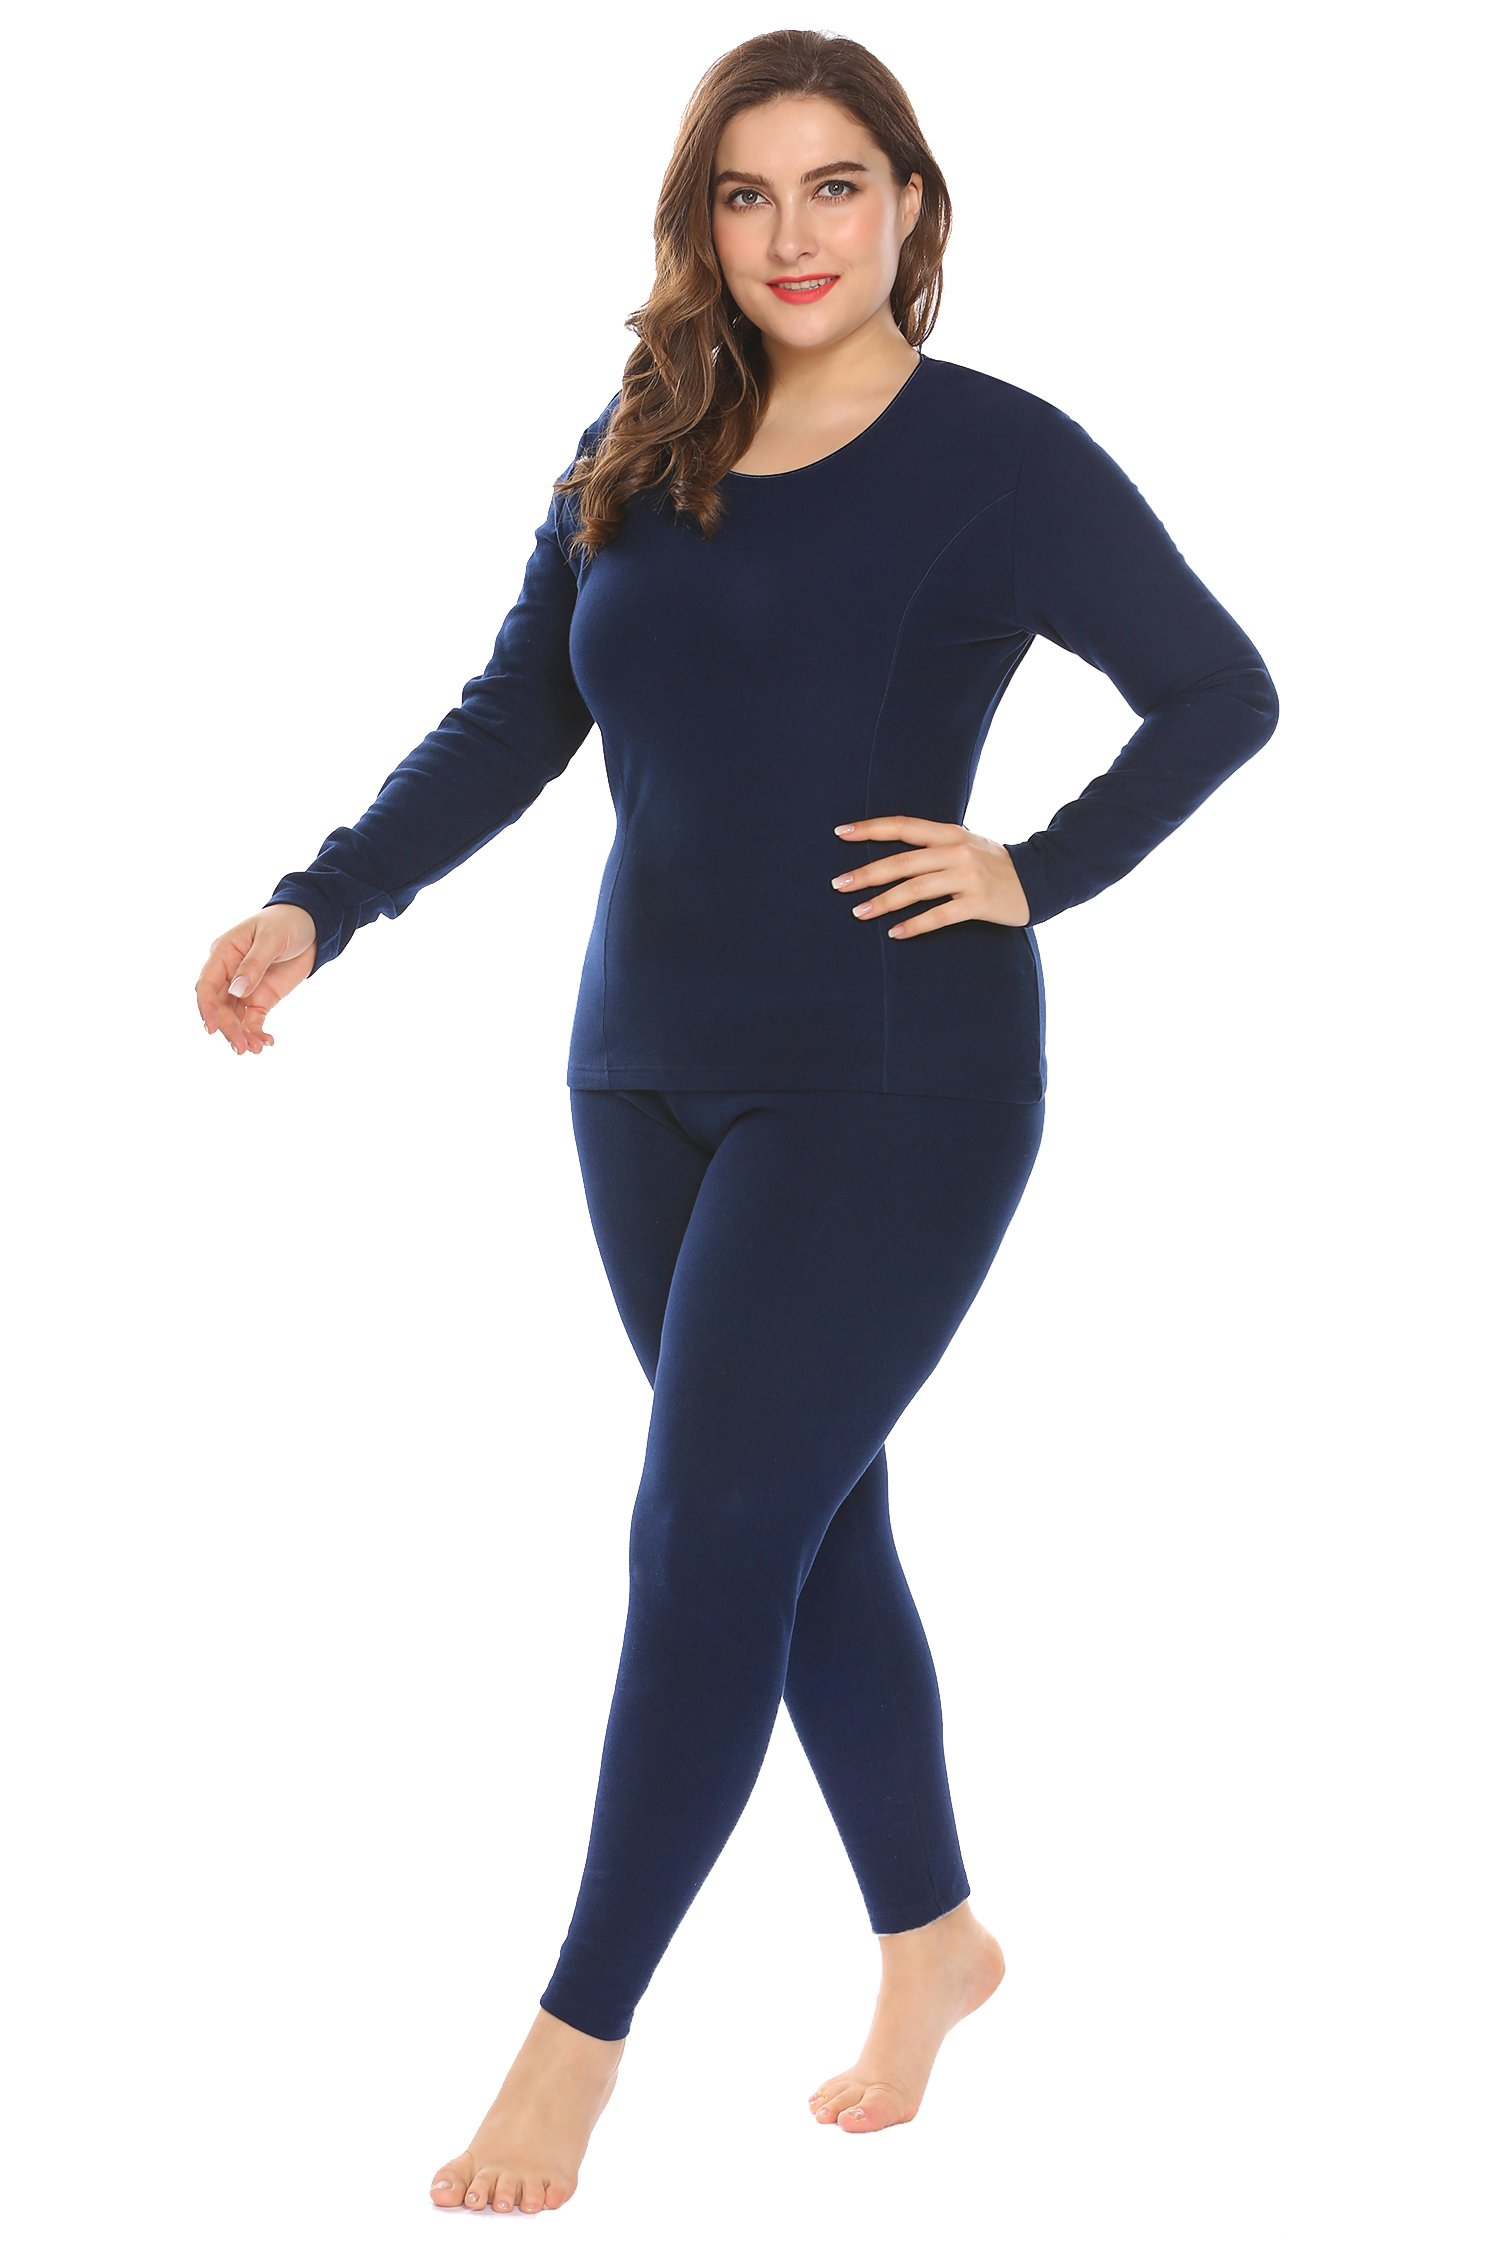 In'voland Women's Plus Size Cotton Thermal Underwear Long Johns Set Solid Top & Bottom Fleece Lined,Champlain Blue,20W/3XL